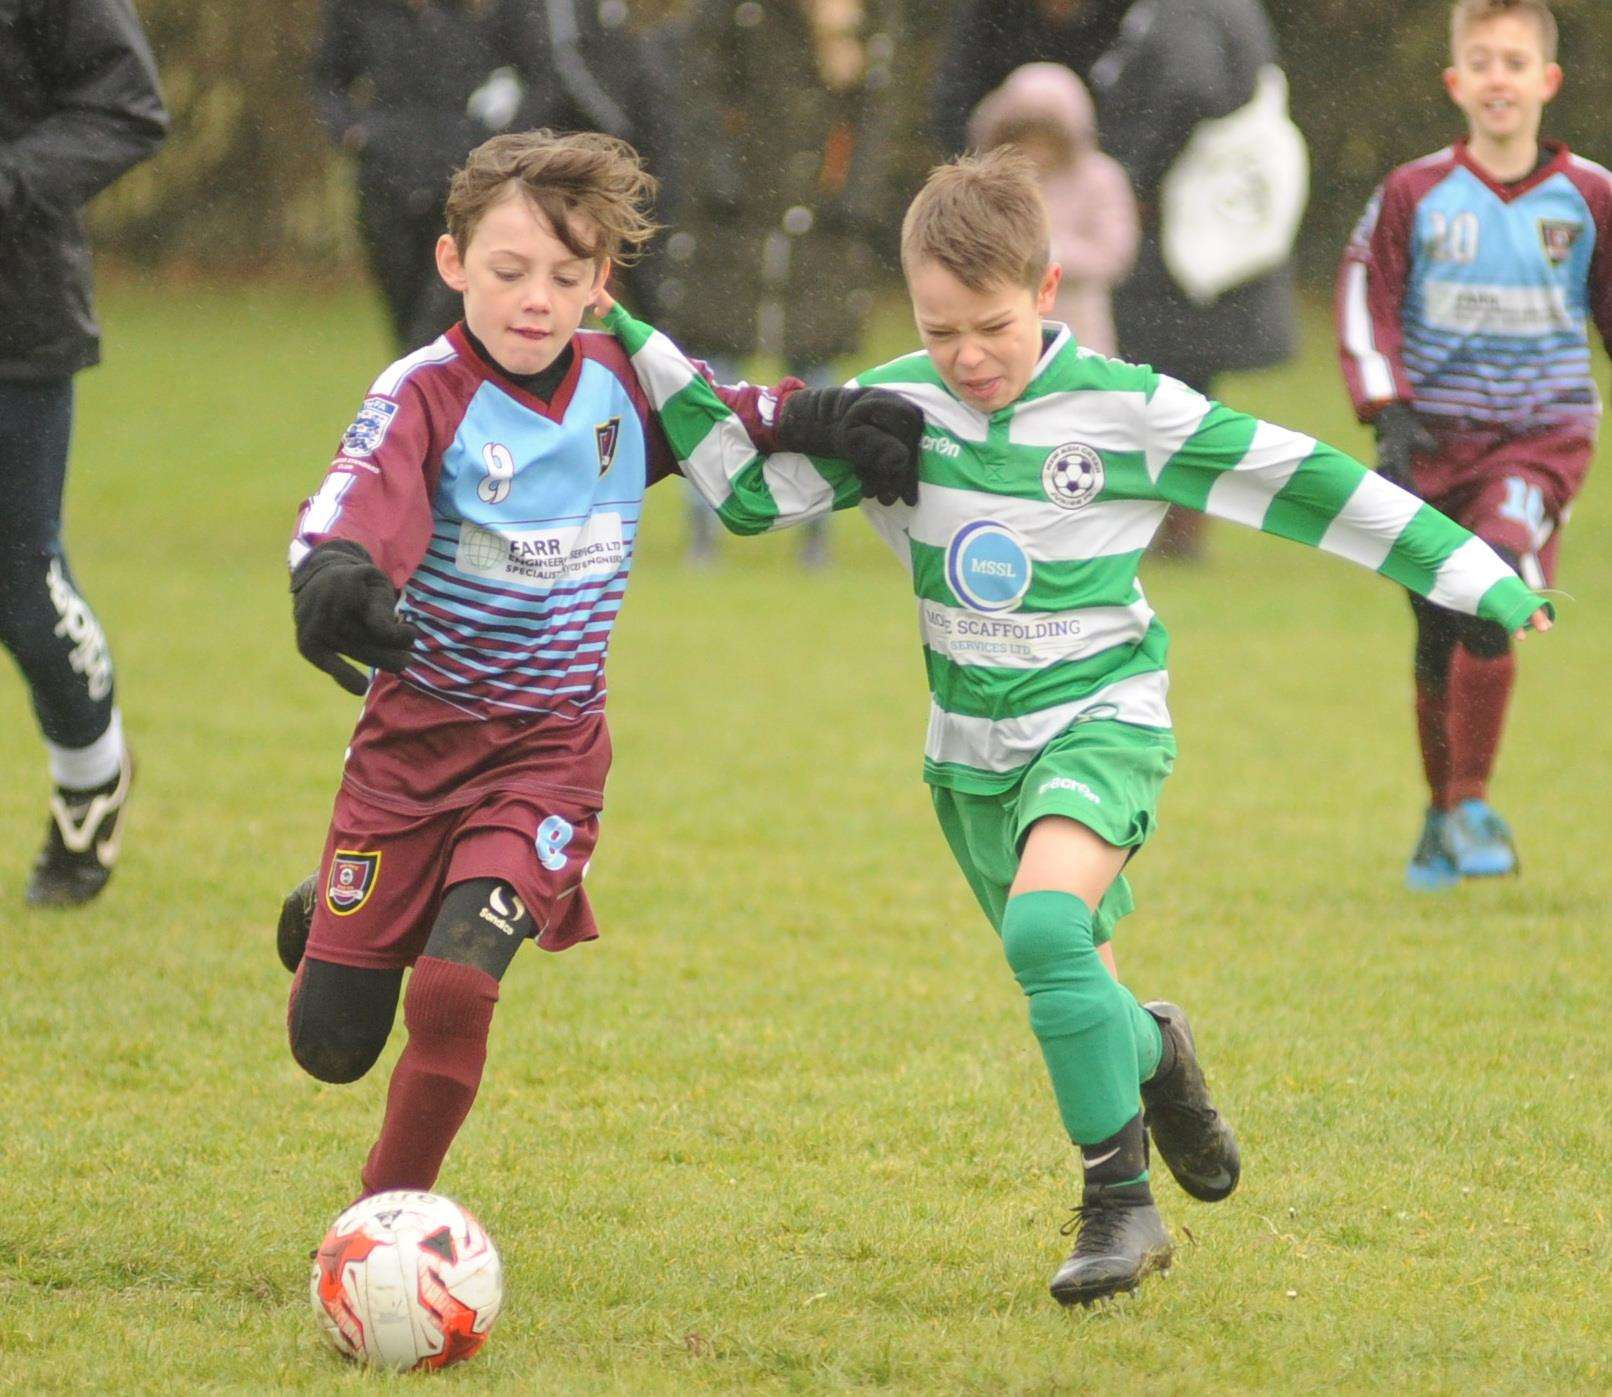 Wigmore Youth Whippets under-9s, left, take on New Ash Green Grasshoppers Picture: Steve Crispe